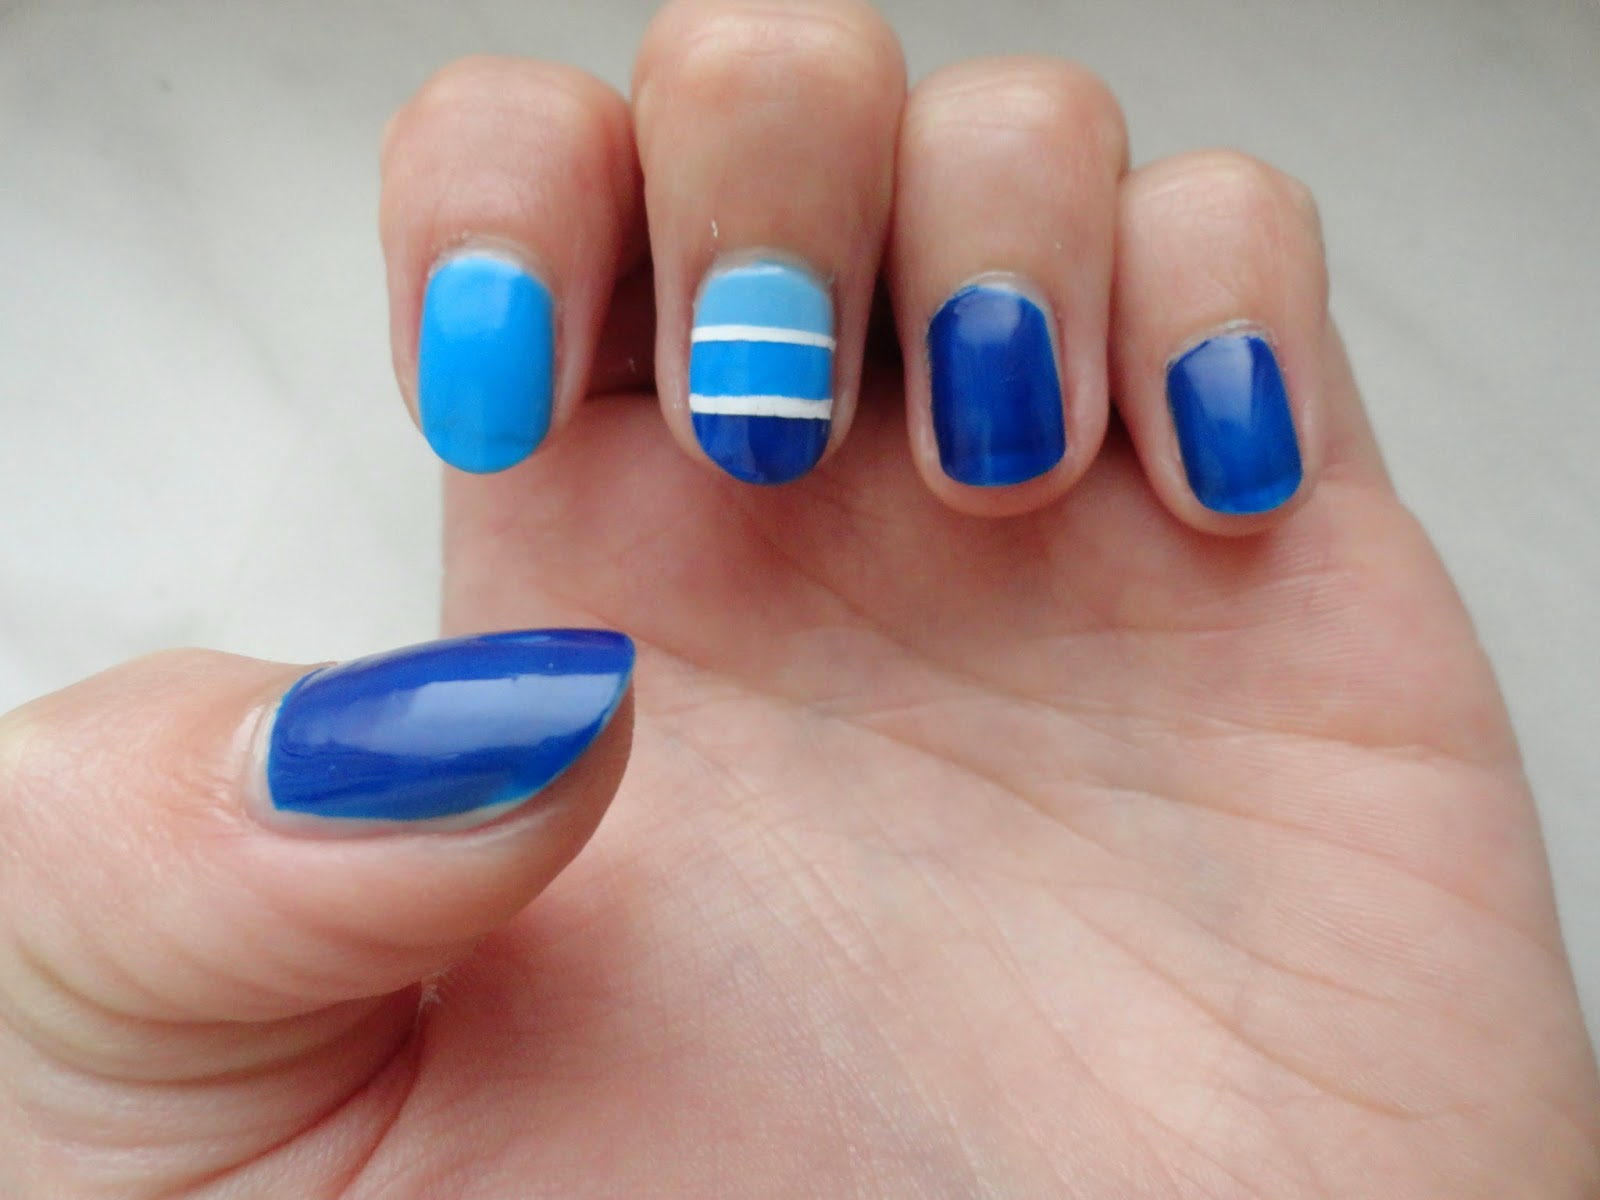 Clothes & Dreams: NOTD: Striped gradient: Nail of the day